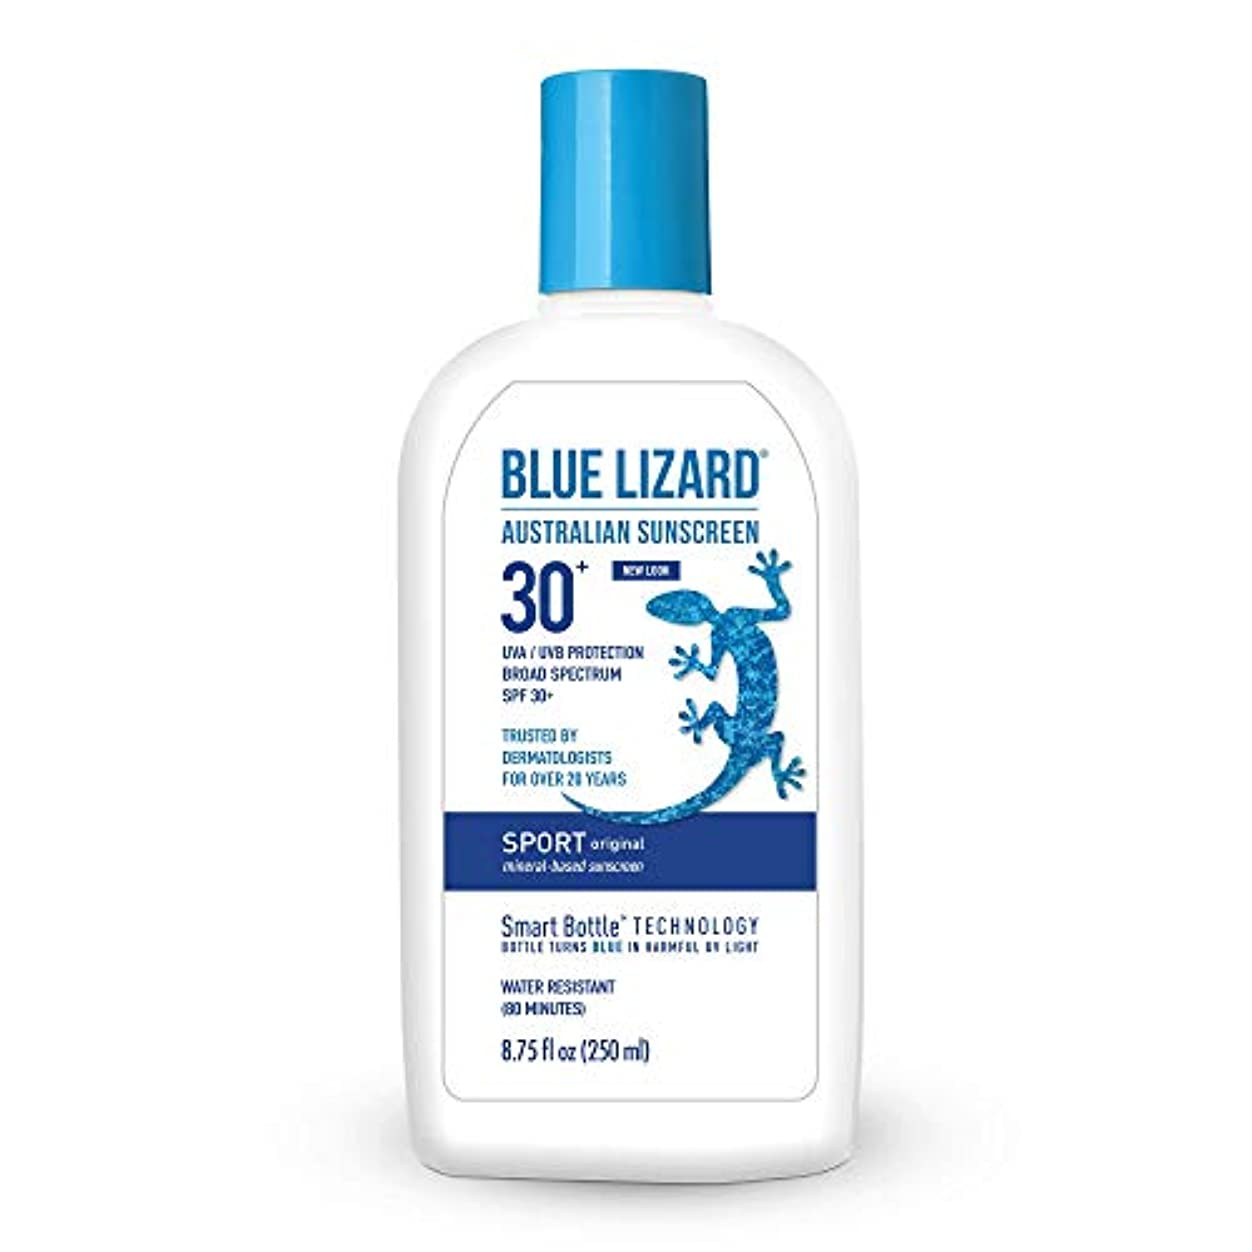 電話六分儀スーツケースBlue Lizard Australian SUNSCREEN SPF 30+, Sport SPF 30+ (8.75 oz) by Blue Lizard